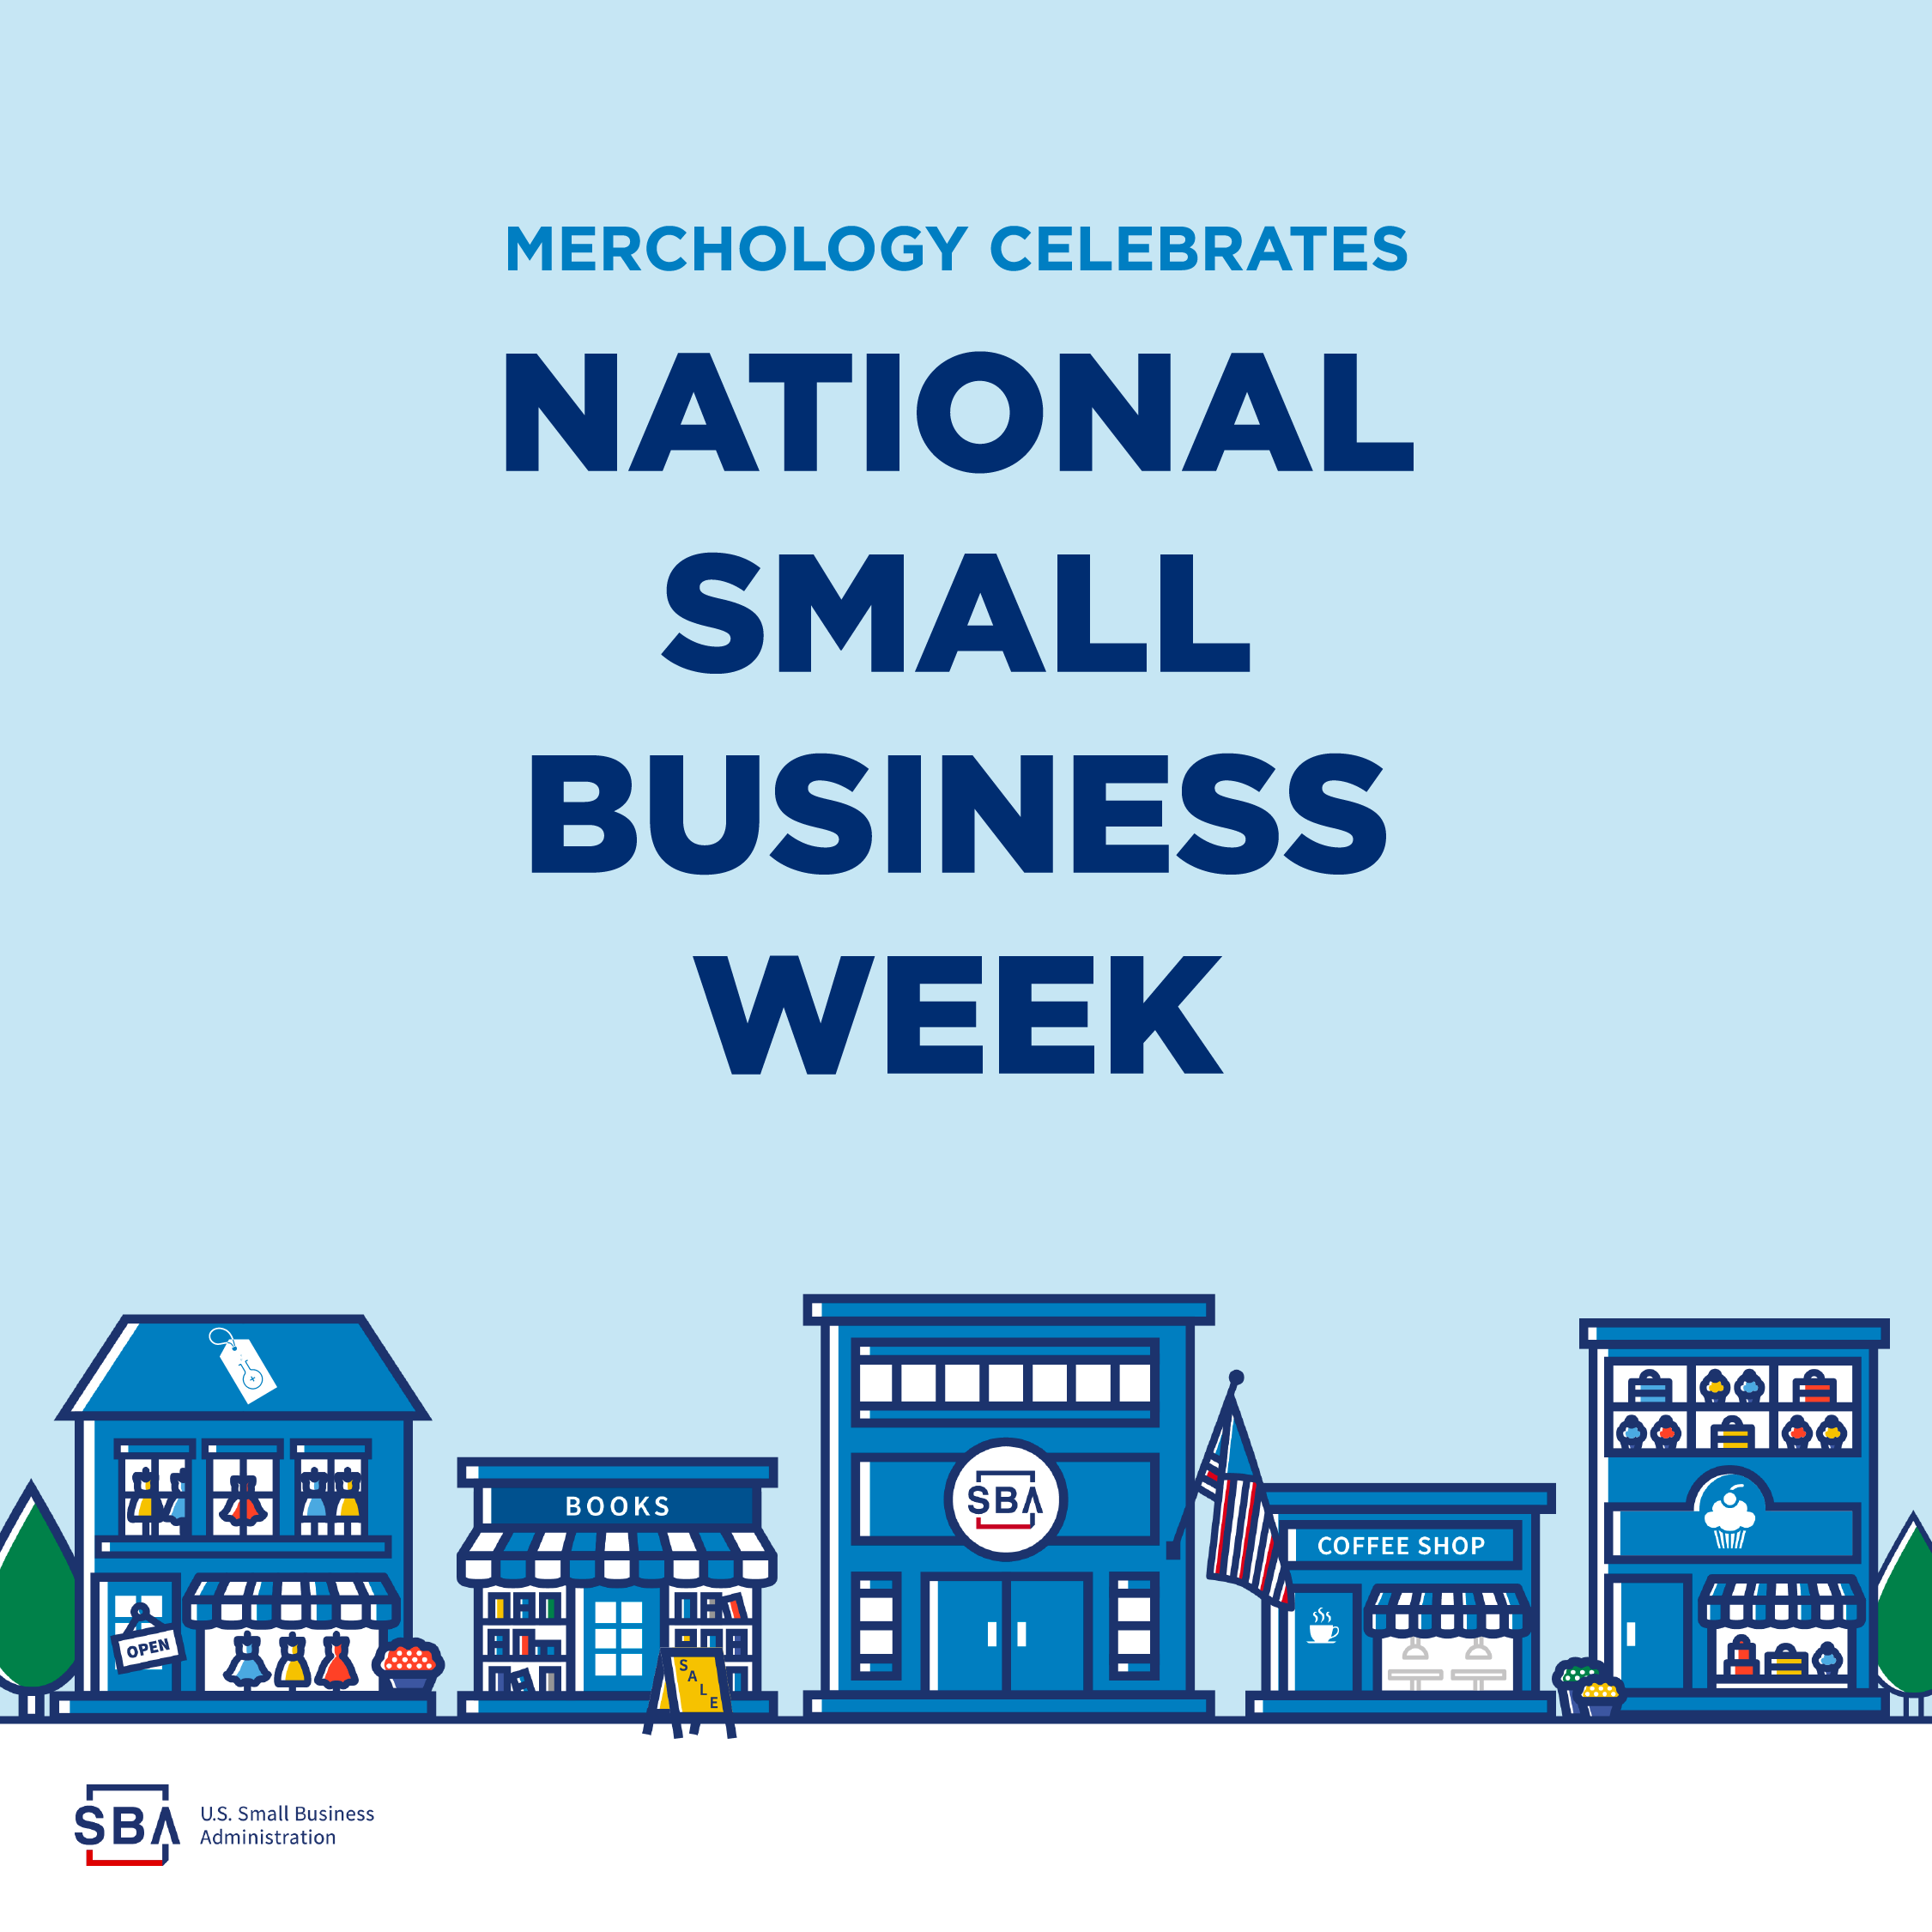 Celebrating National Small Business Week 2019